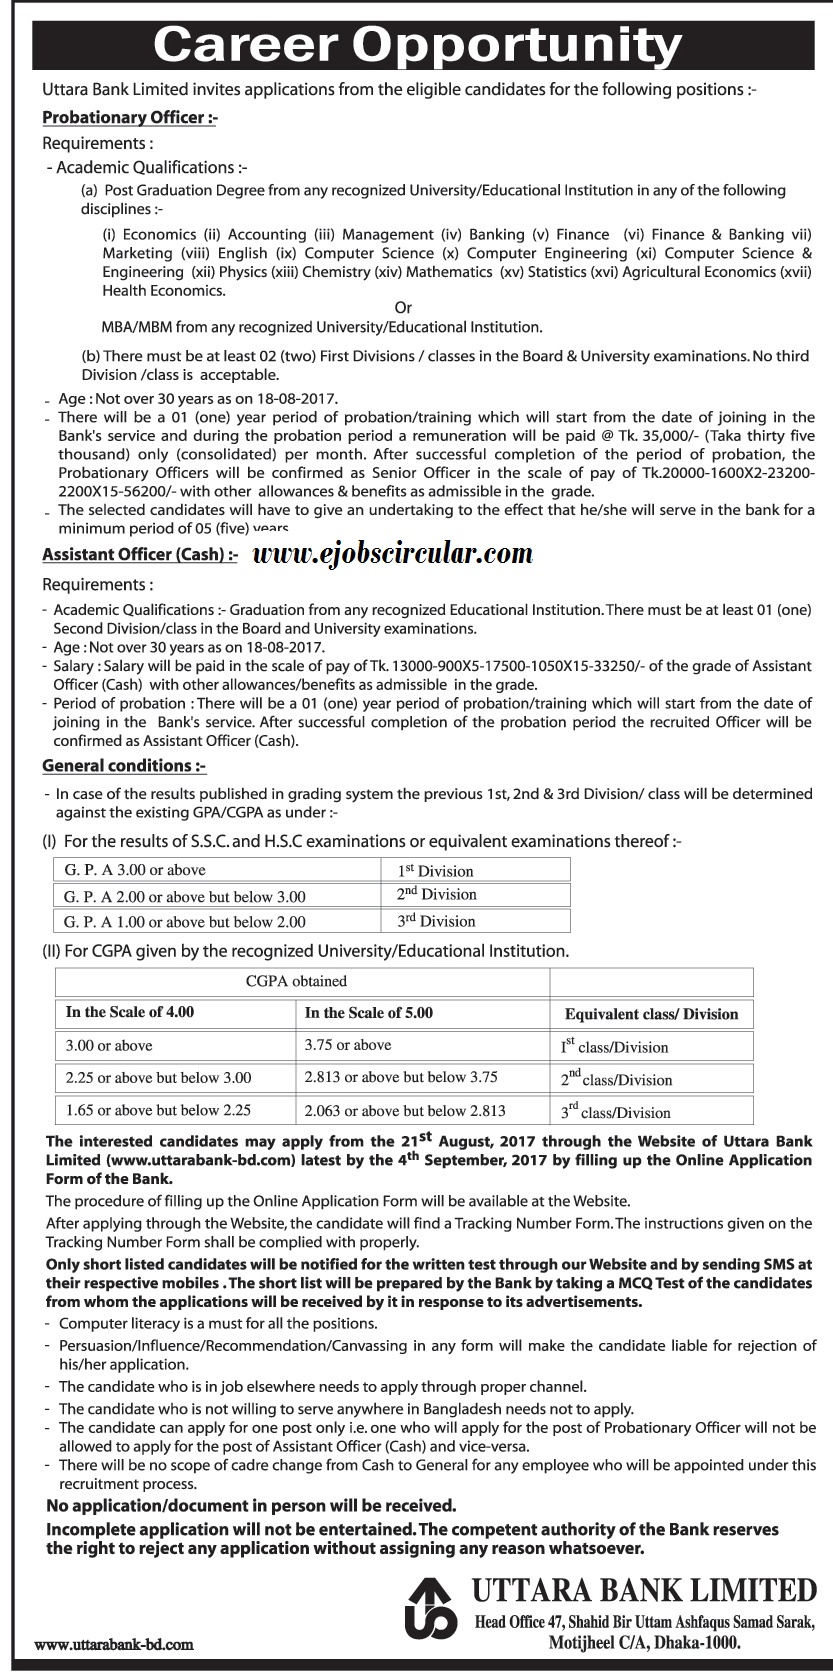 Uttara Bank Limited Job Circular